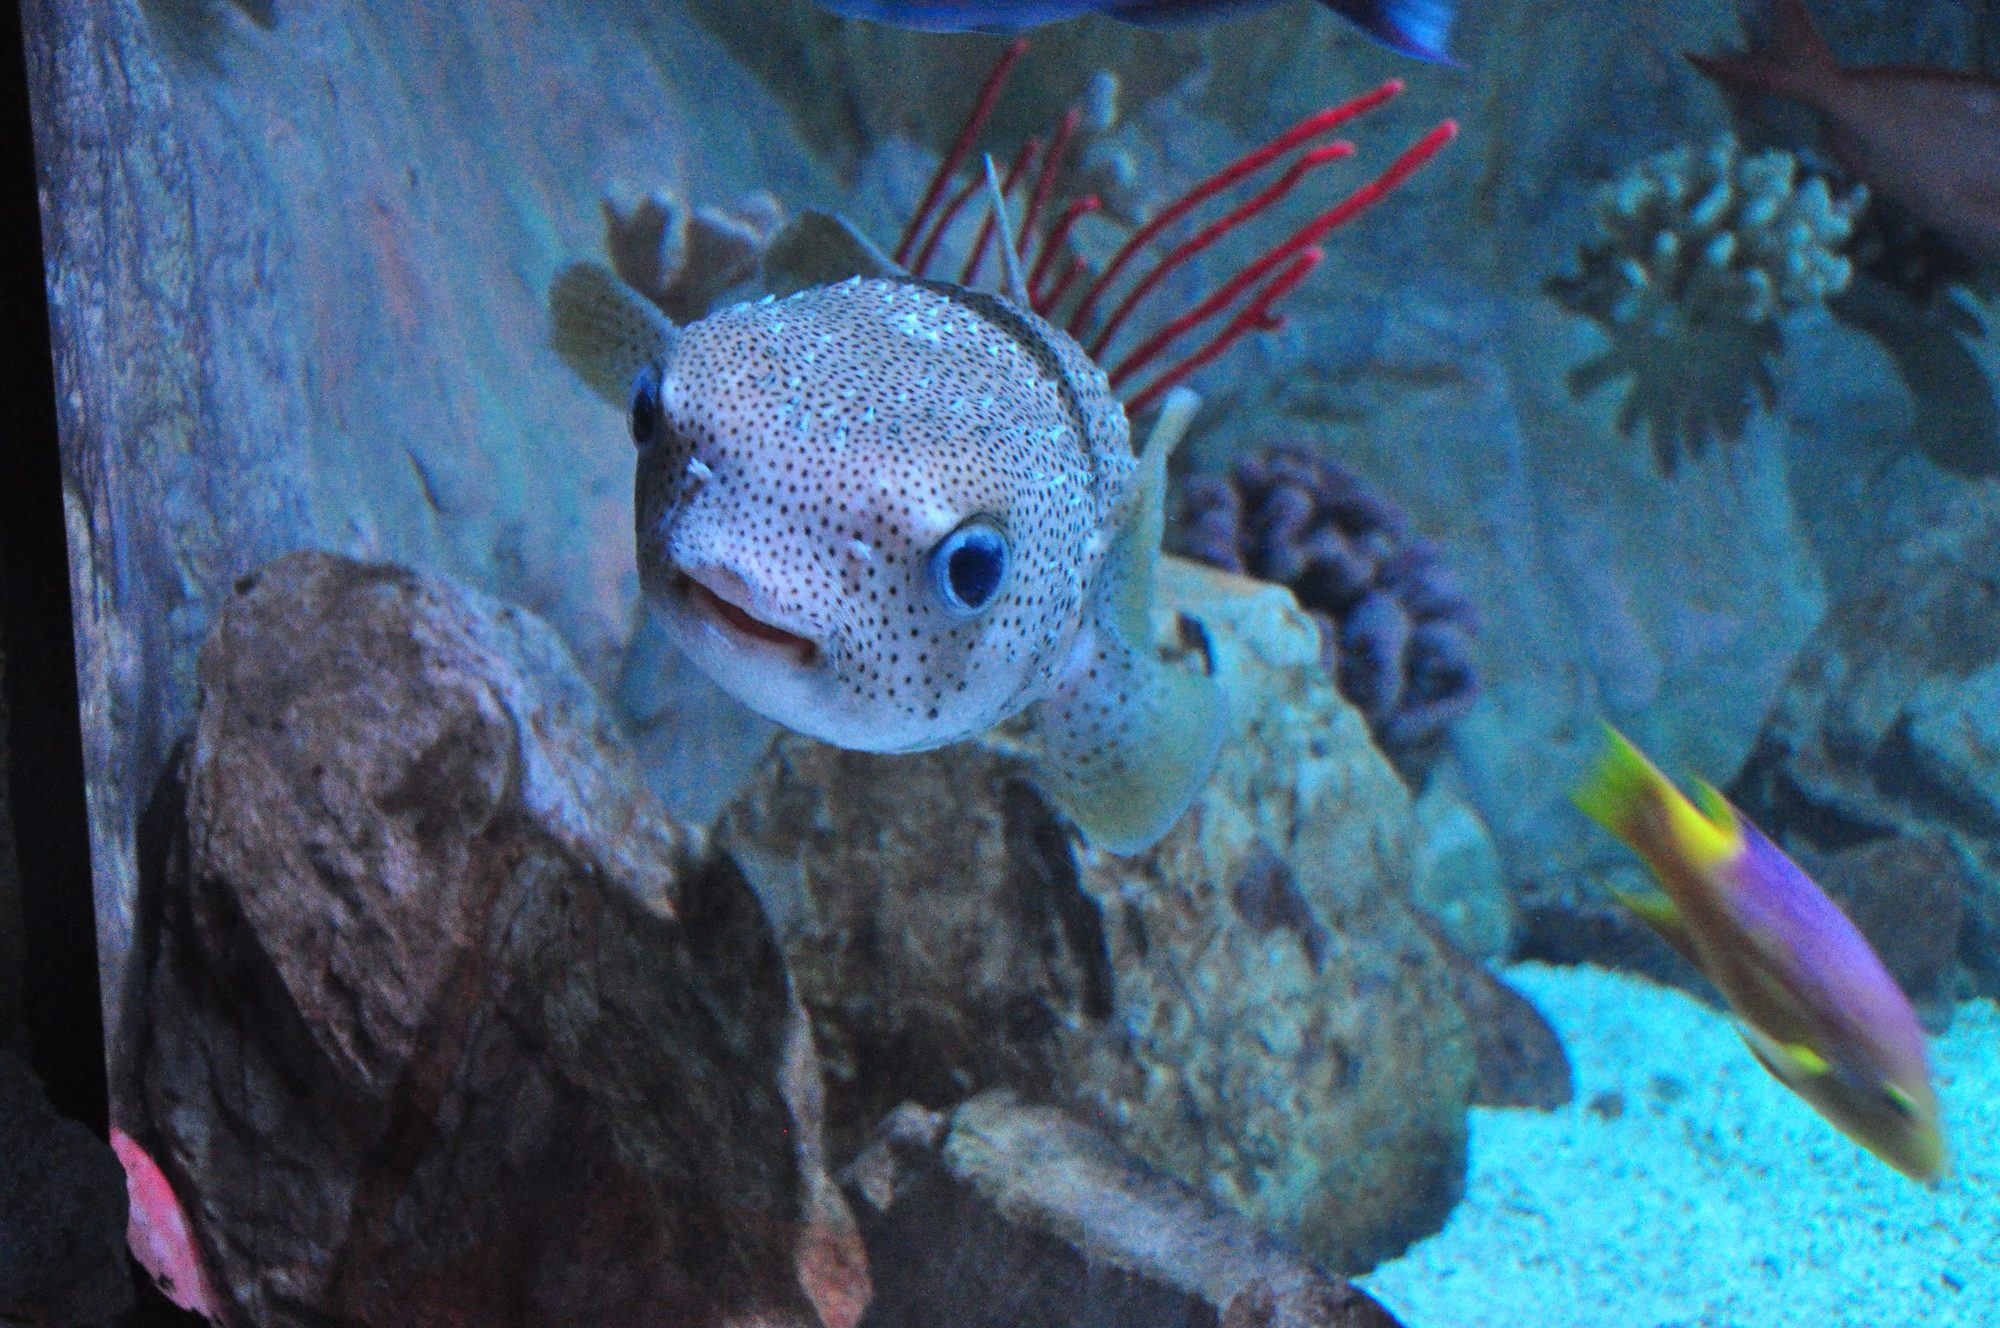 A review of sea life aquarium in phoenix arizona family Arizona mills mall aquarium